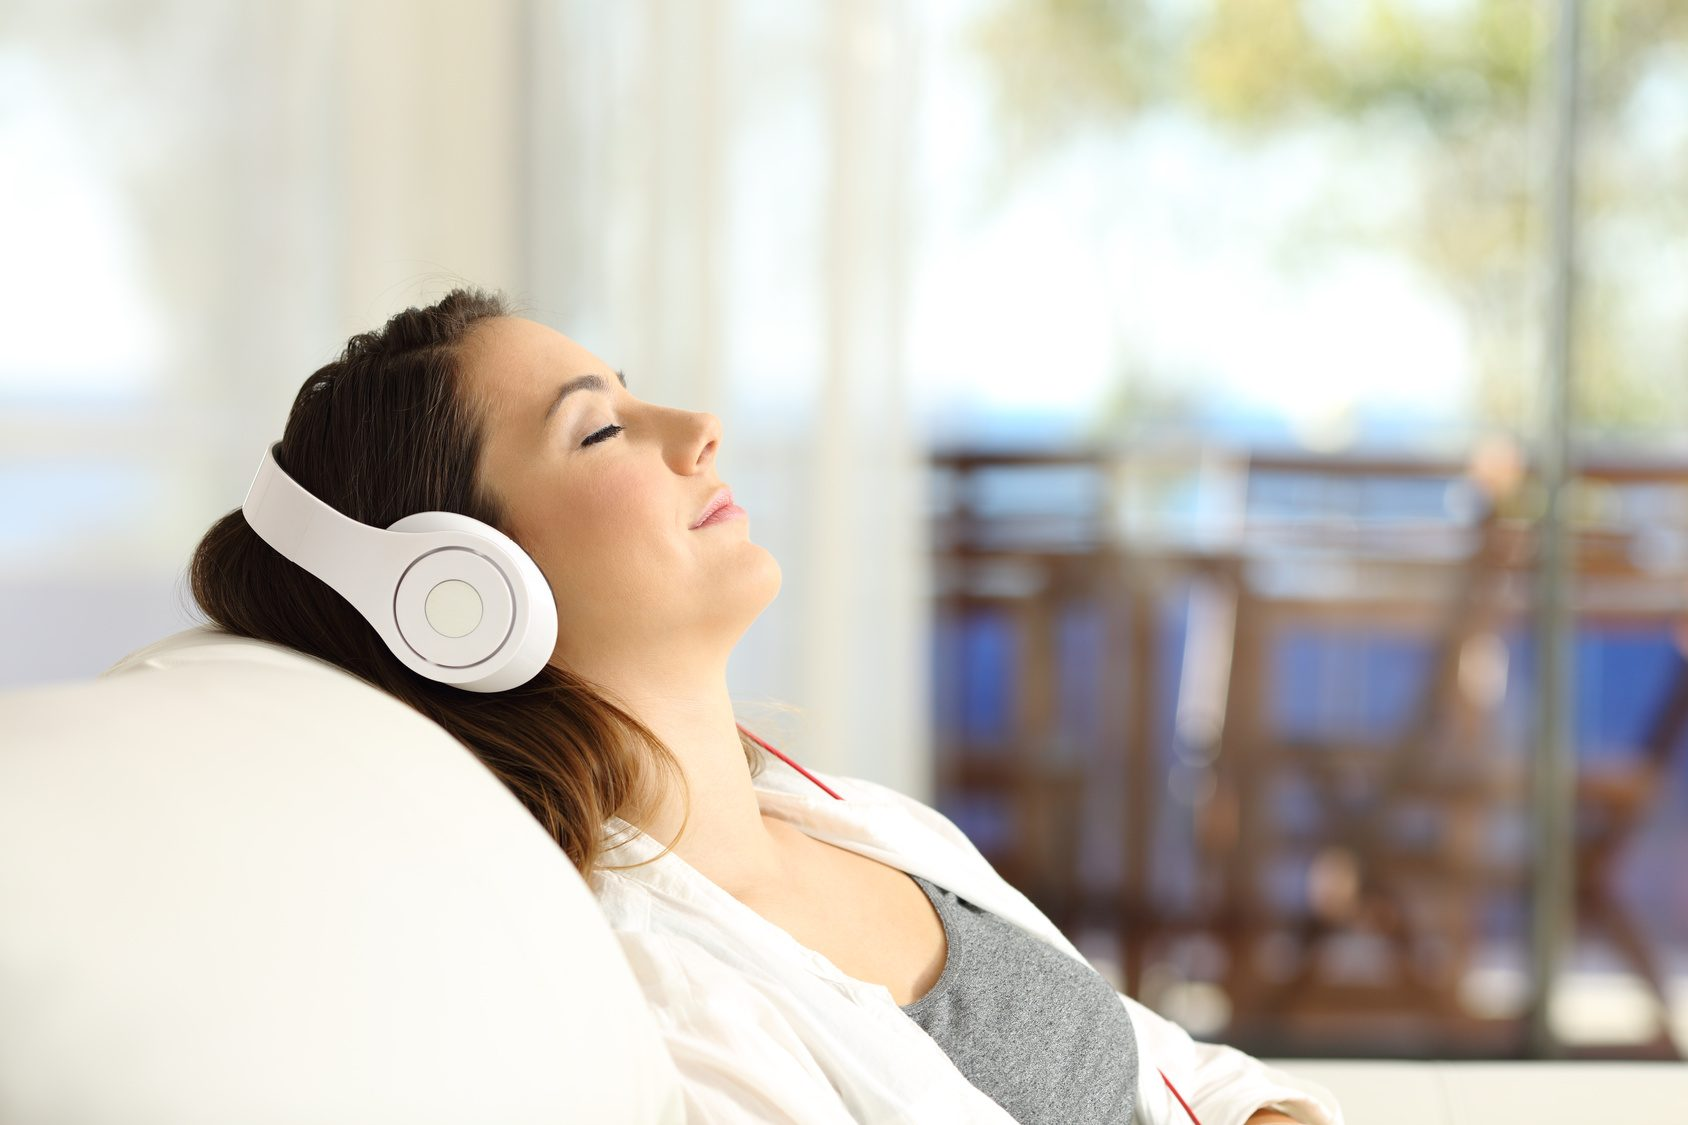 Side view portrait of a woman relaxing listening to music on a couch in the living room at home